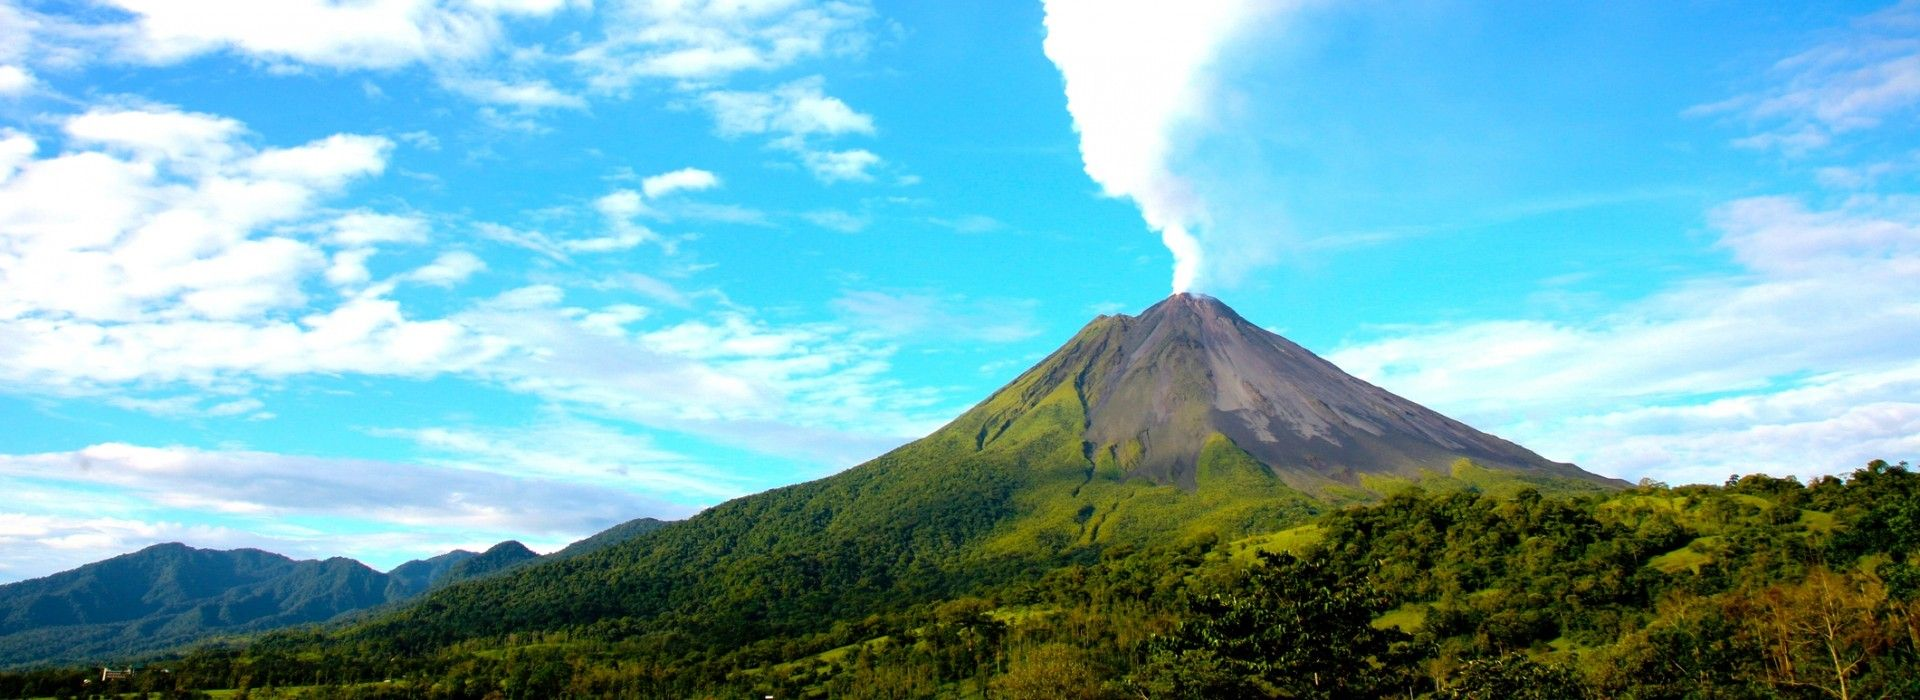 Special interests and hobbies Tours in Costa Rica